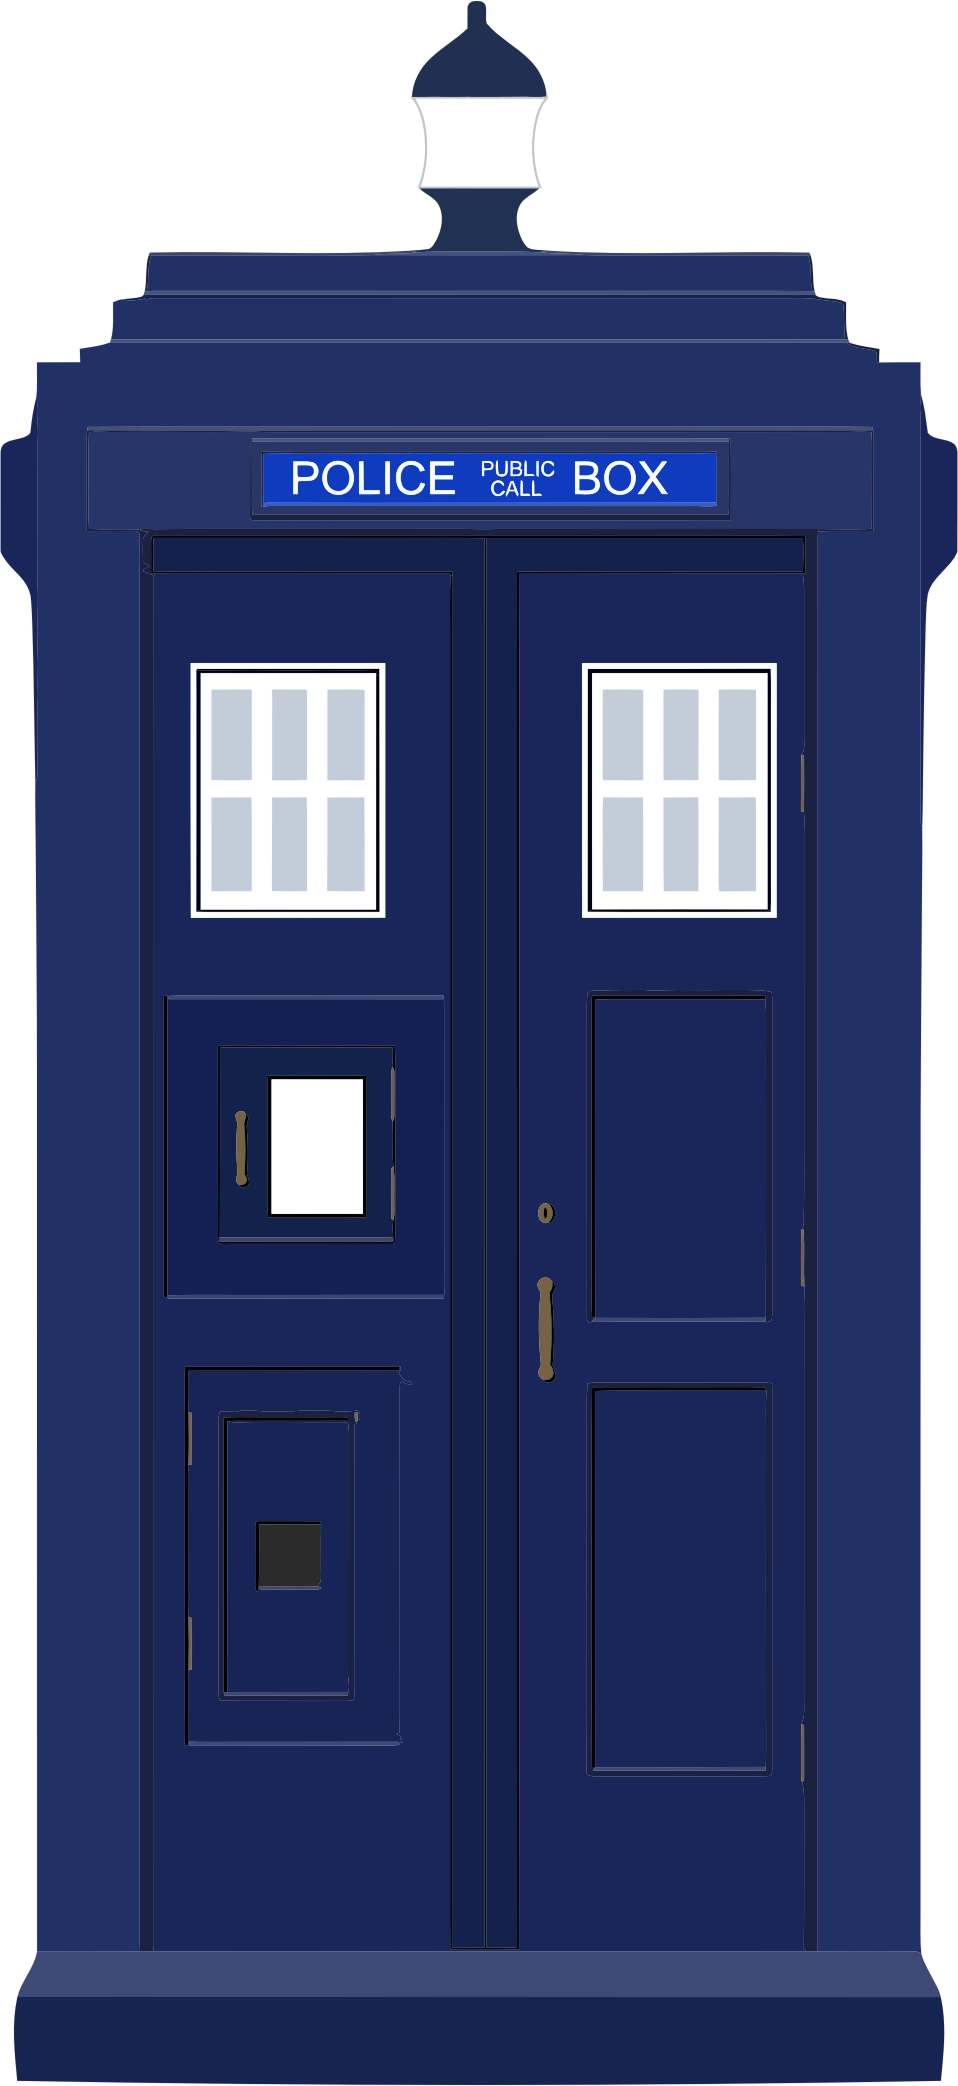 Police call box clipart.